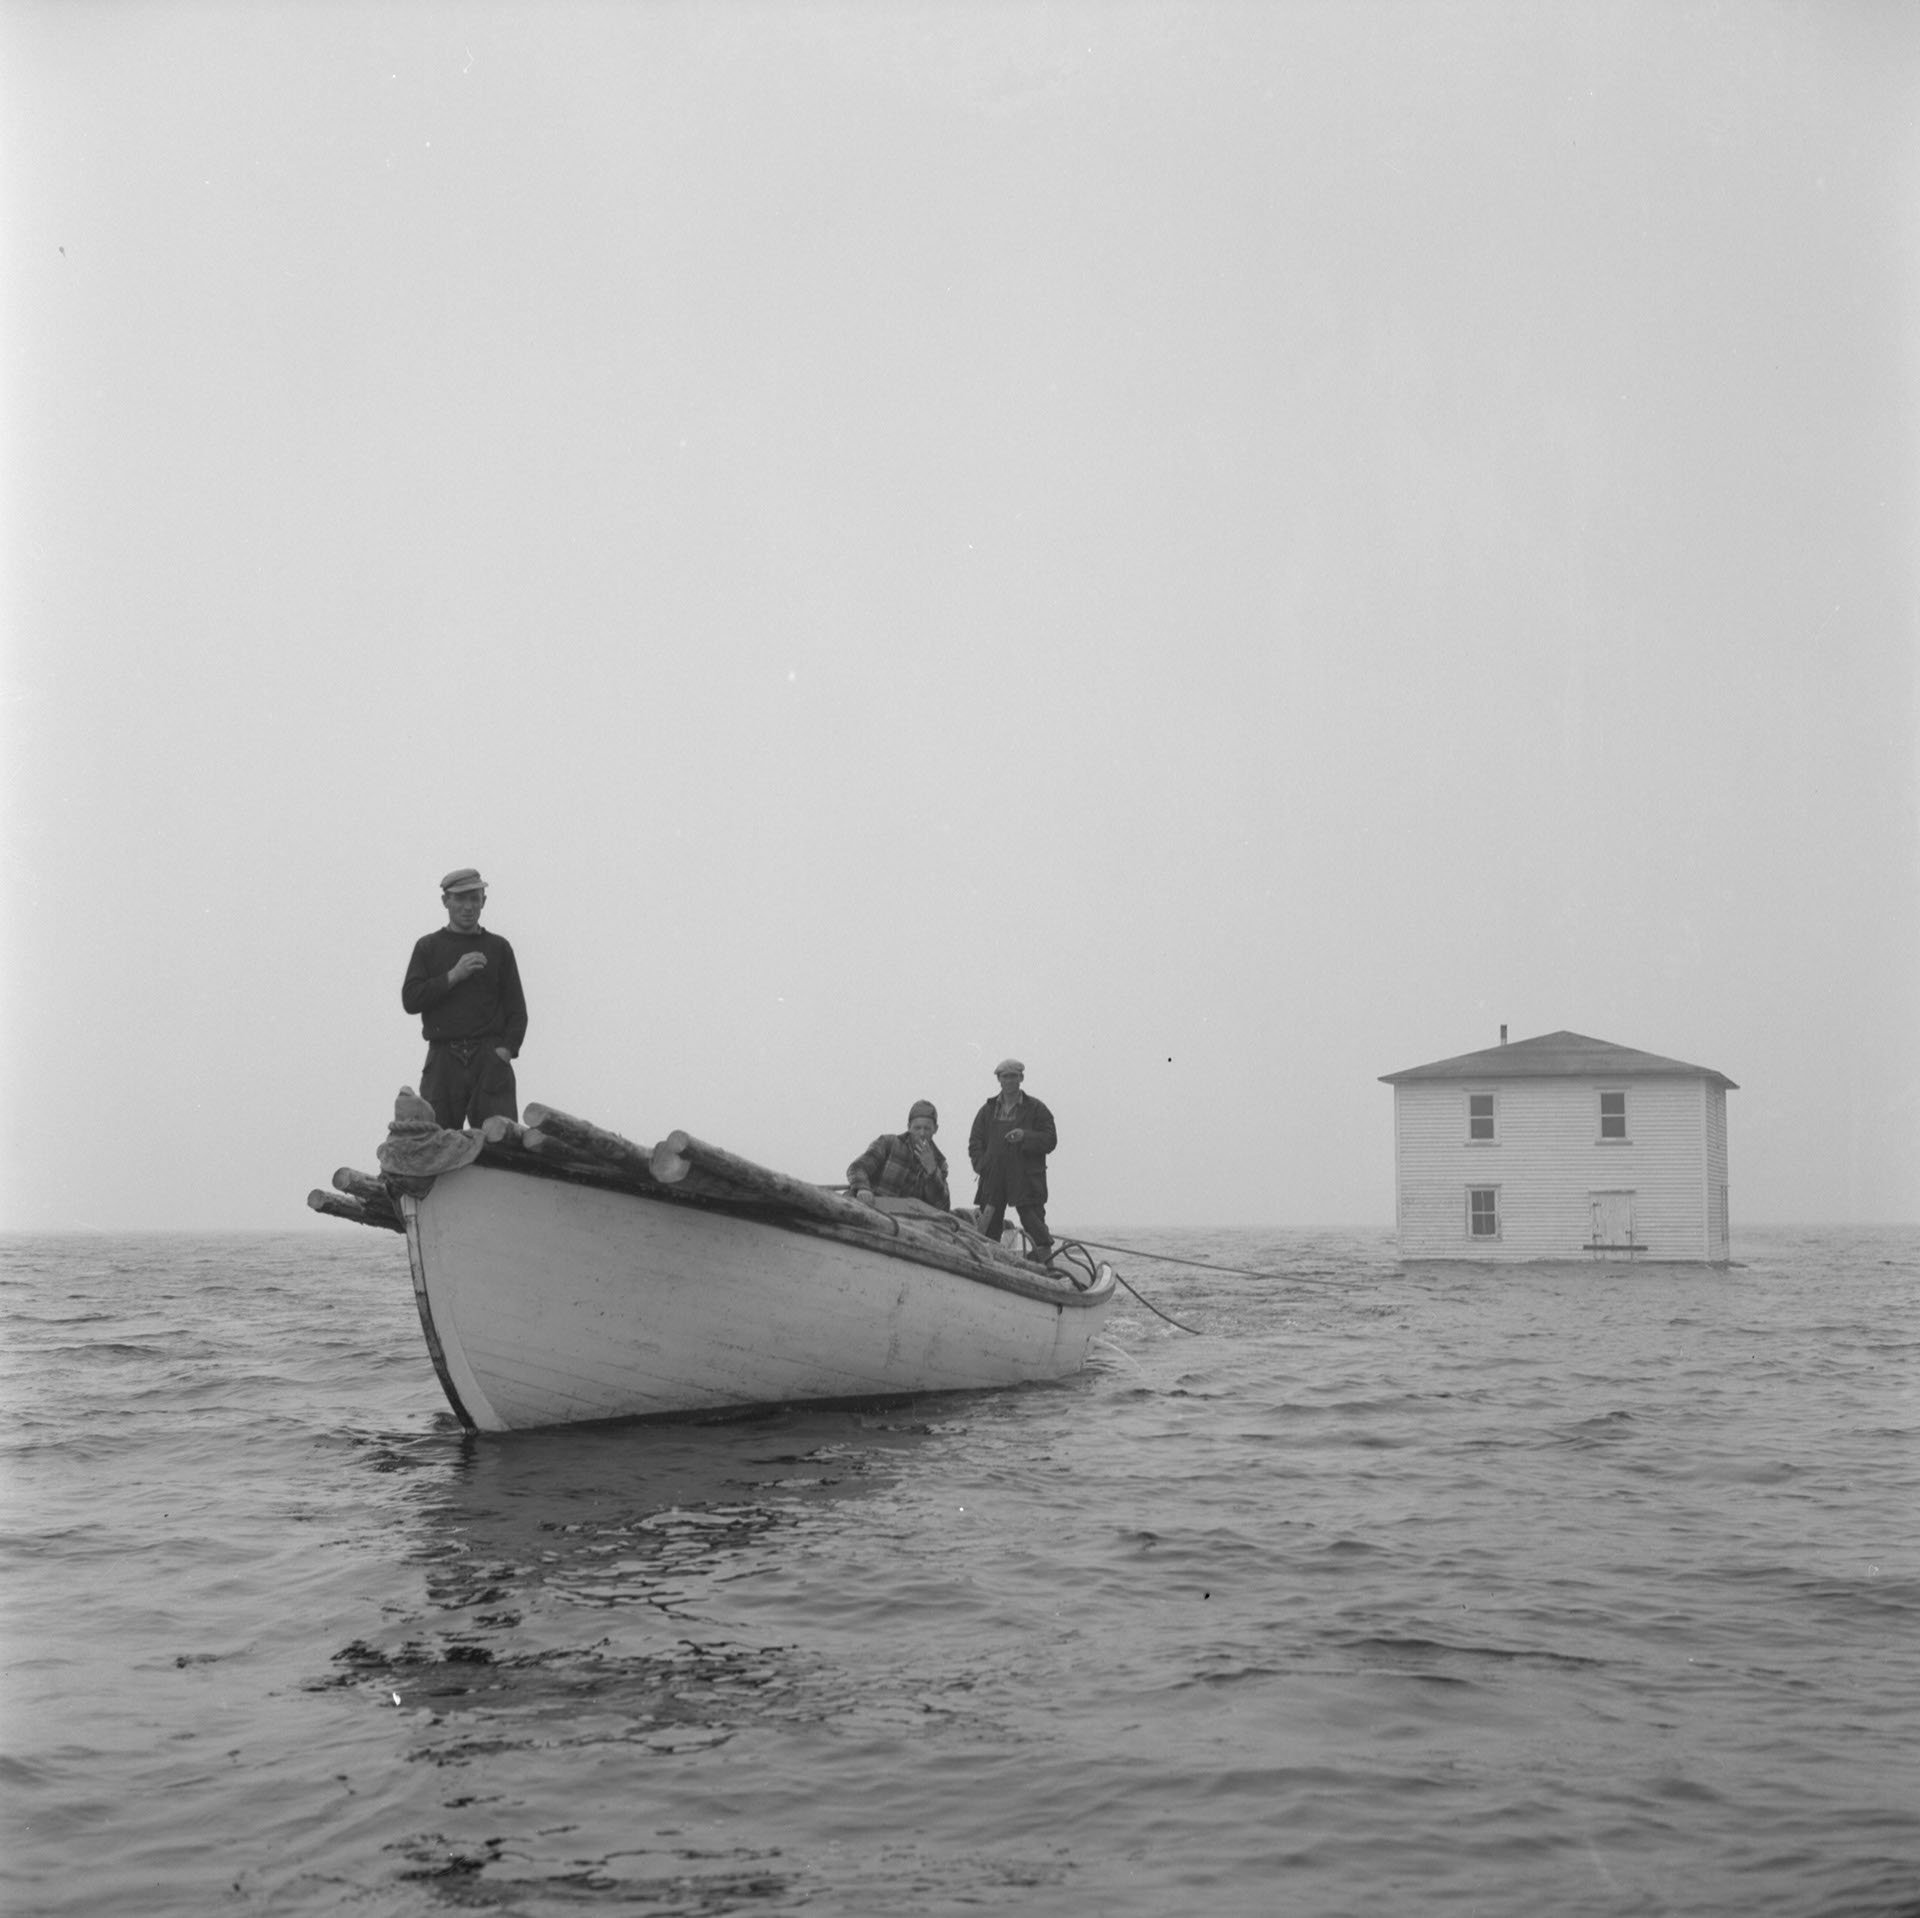 Newfoundland outport house being towed by fishing boat